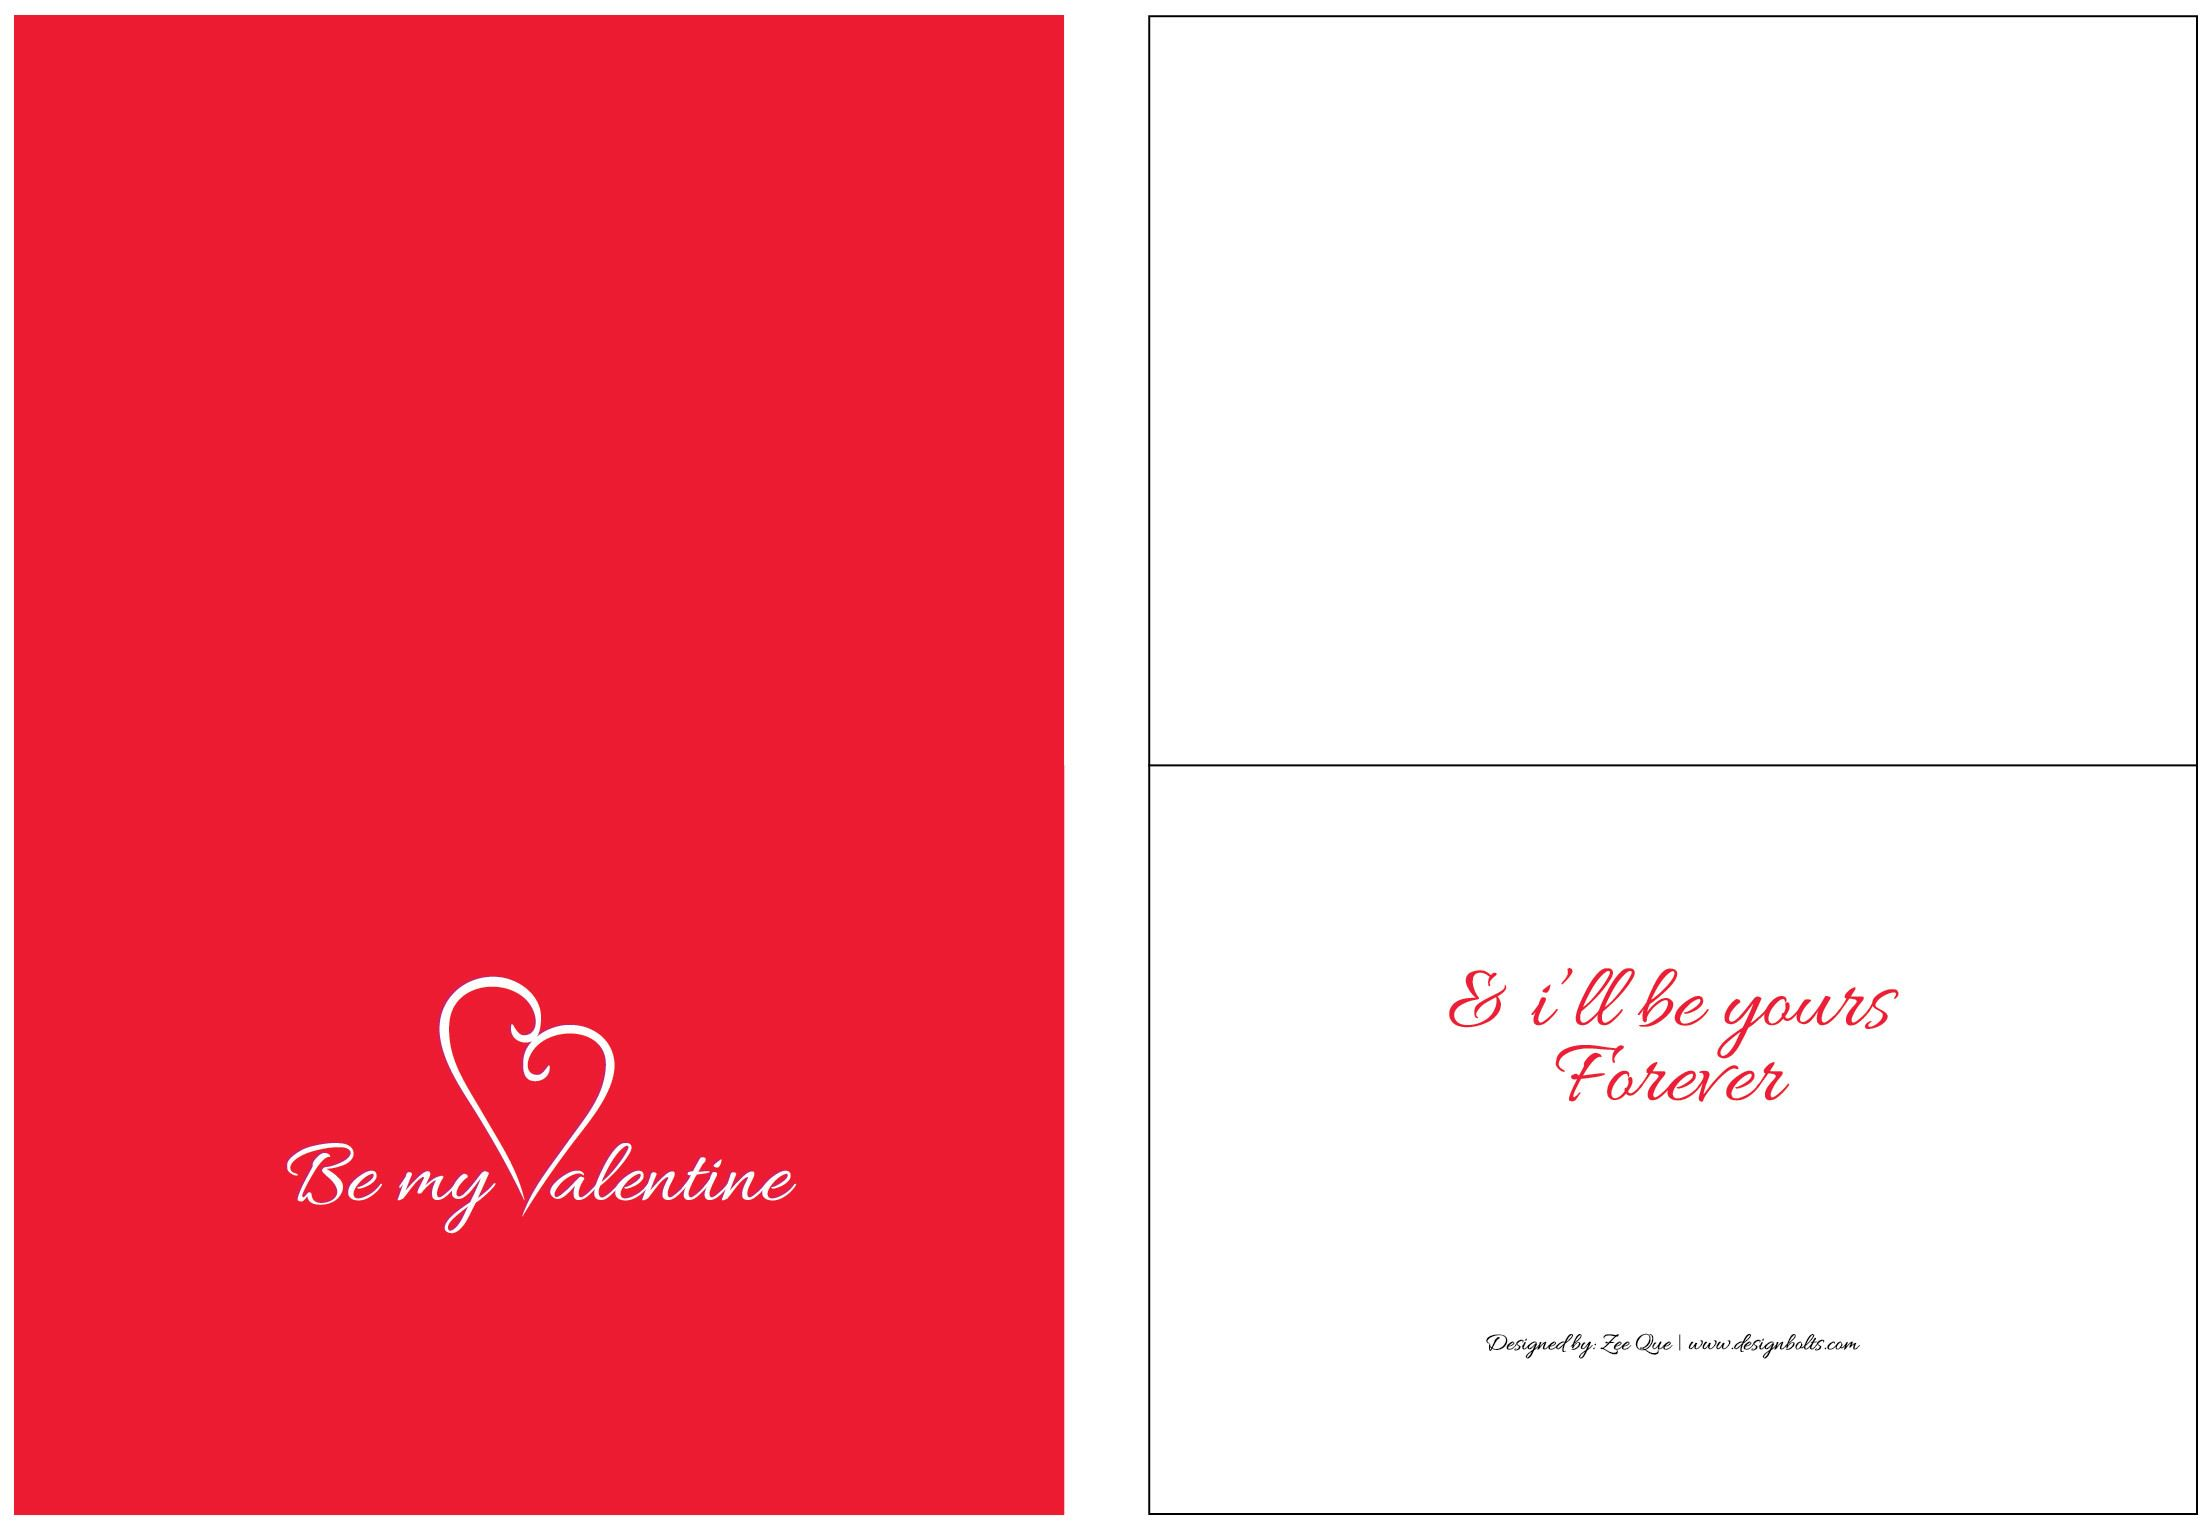 Beautiful valentine card mockup template vector download beautiful valentine card mockup template download large image 2207x1529px pronofoot35fo Image collections